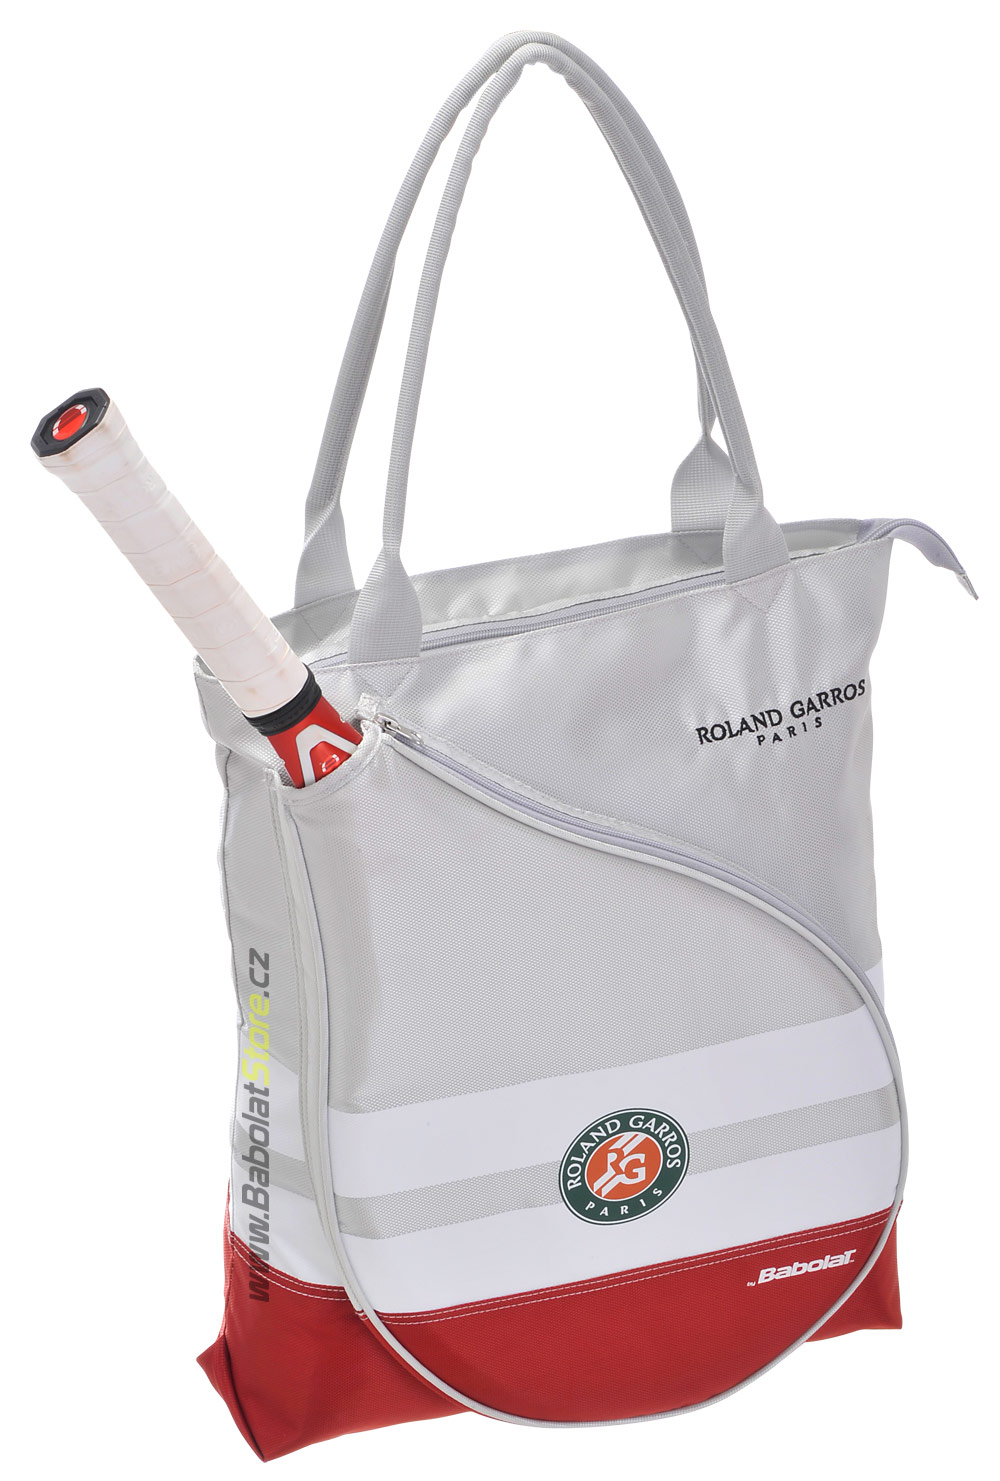 Babolat Tote Bag French Open